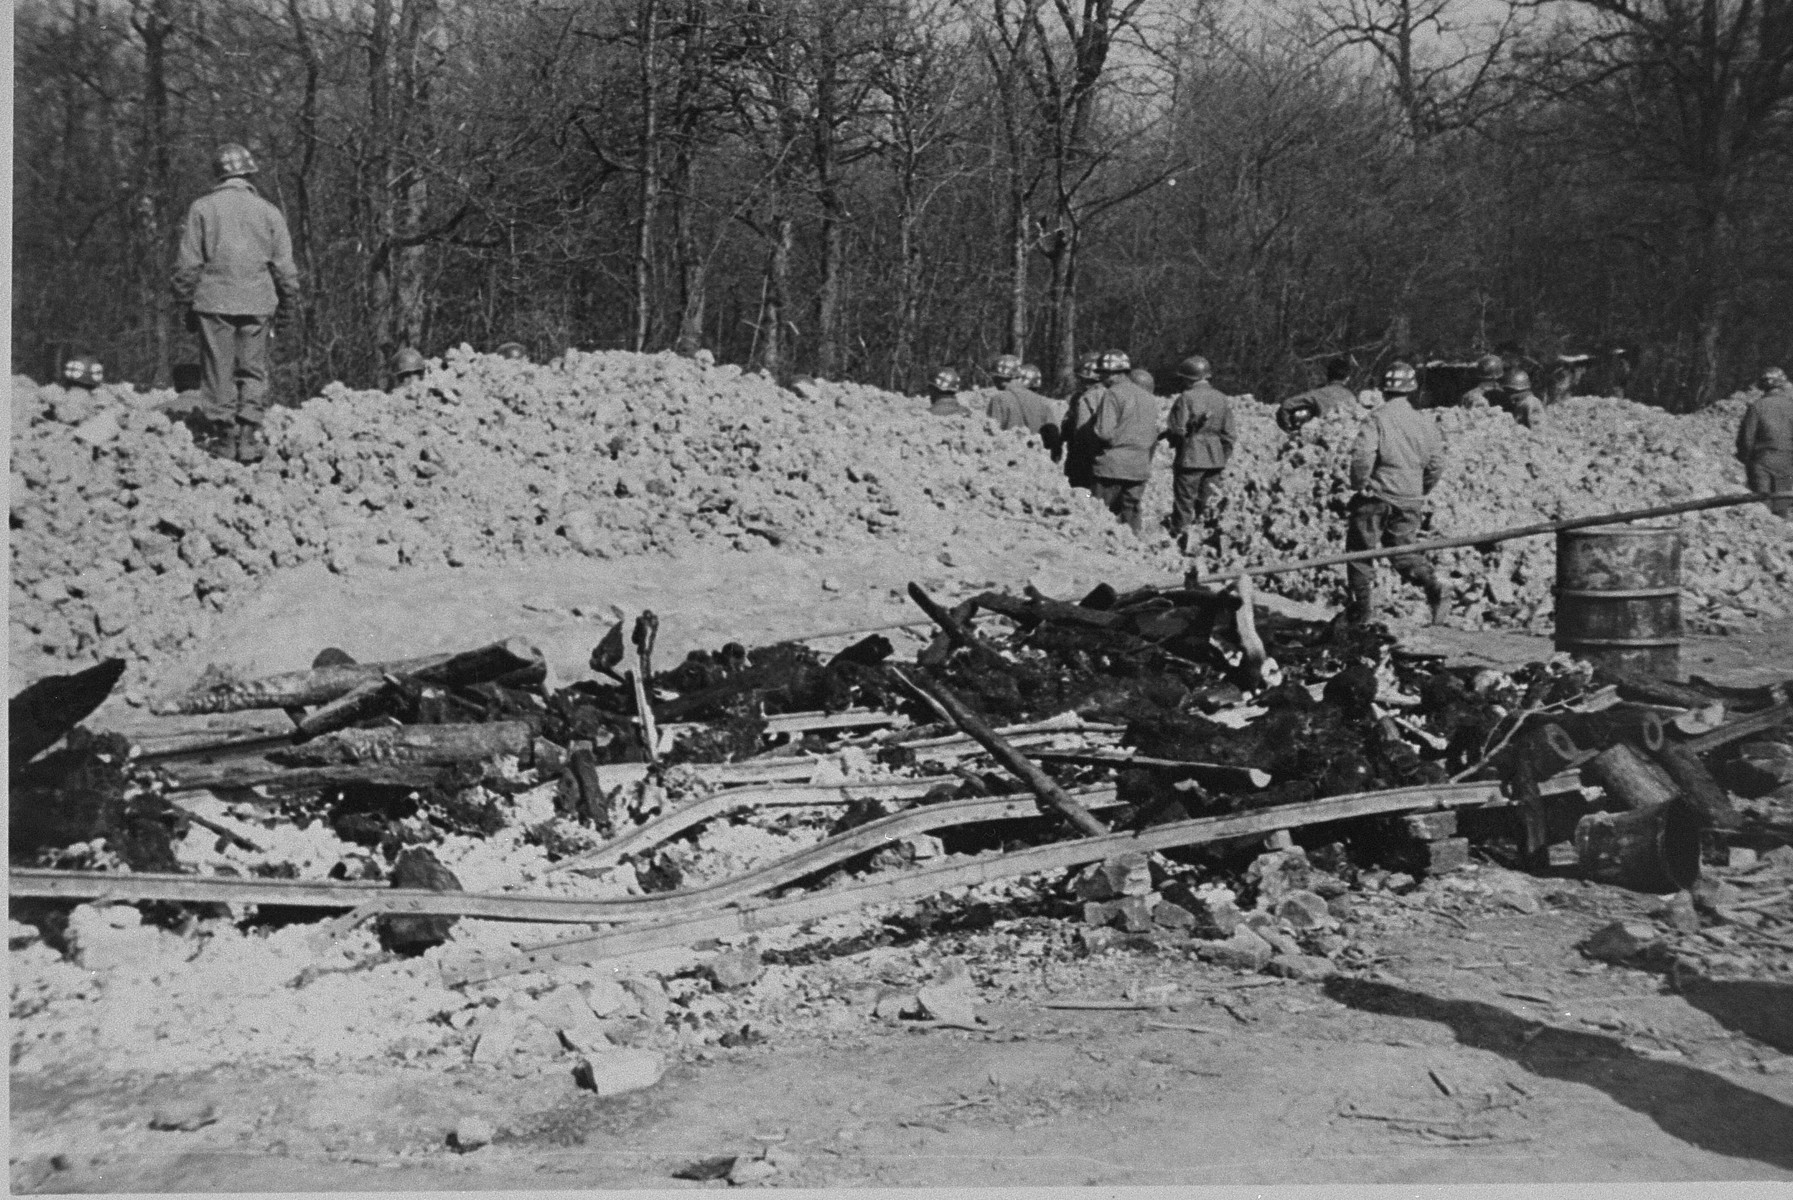 American soldiers stand at the edge of a mass grave in Ohrdruf. Behind them lie the charred remains of prisoners hastily burned during the evacuation of the camp.